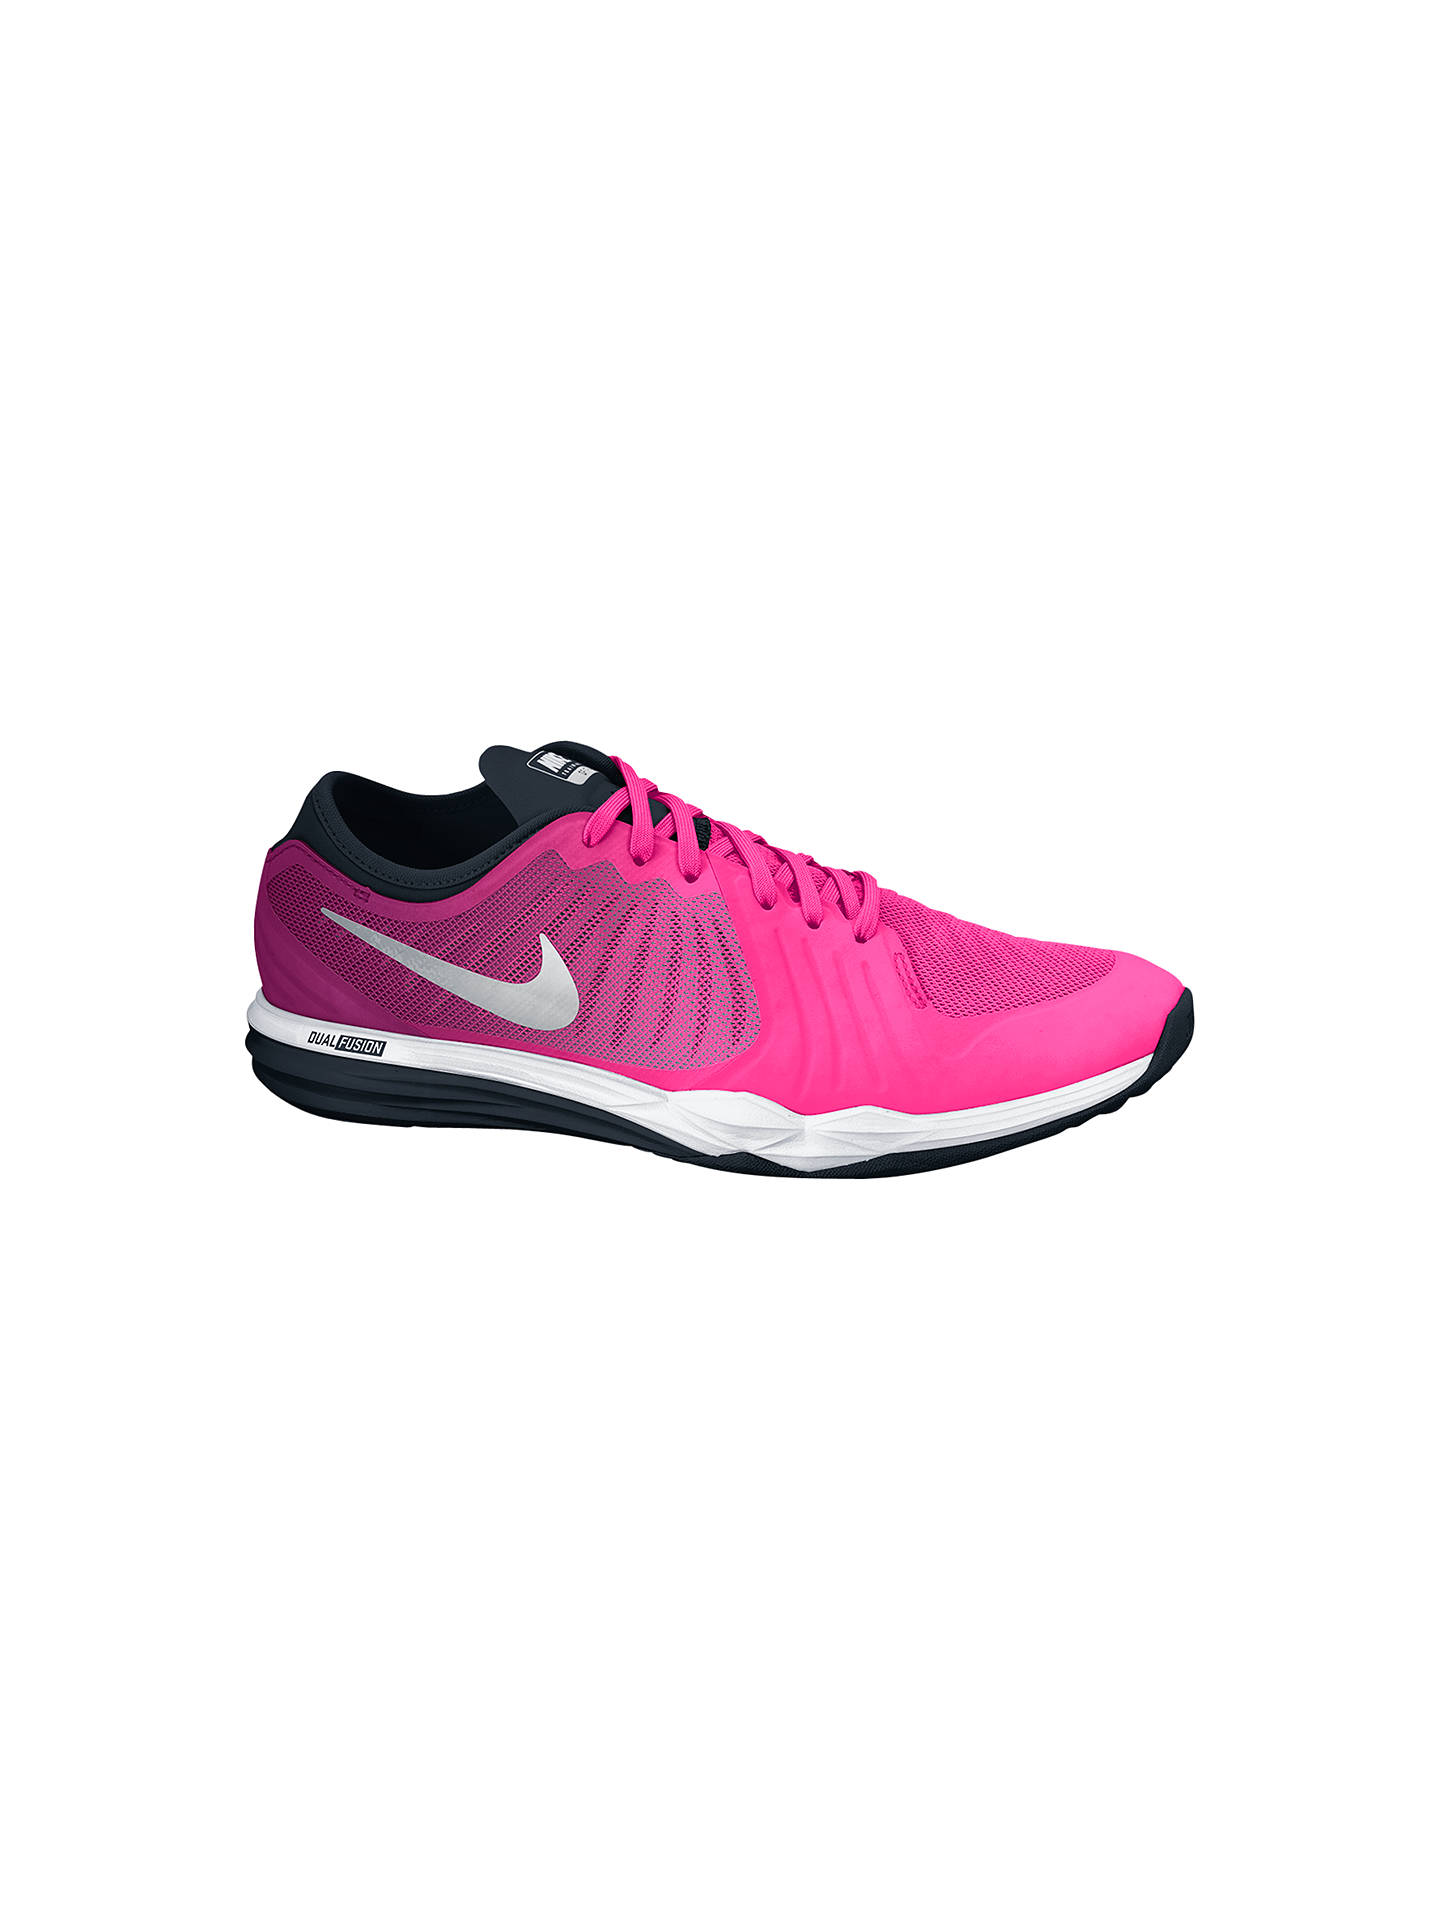 224856b0825d6 Buy Nike Free TR Fit 4 Print Women s Cross Trainers